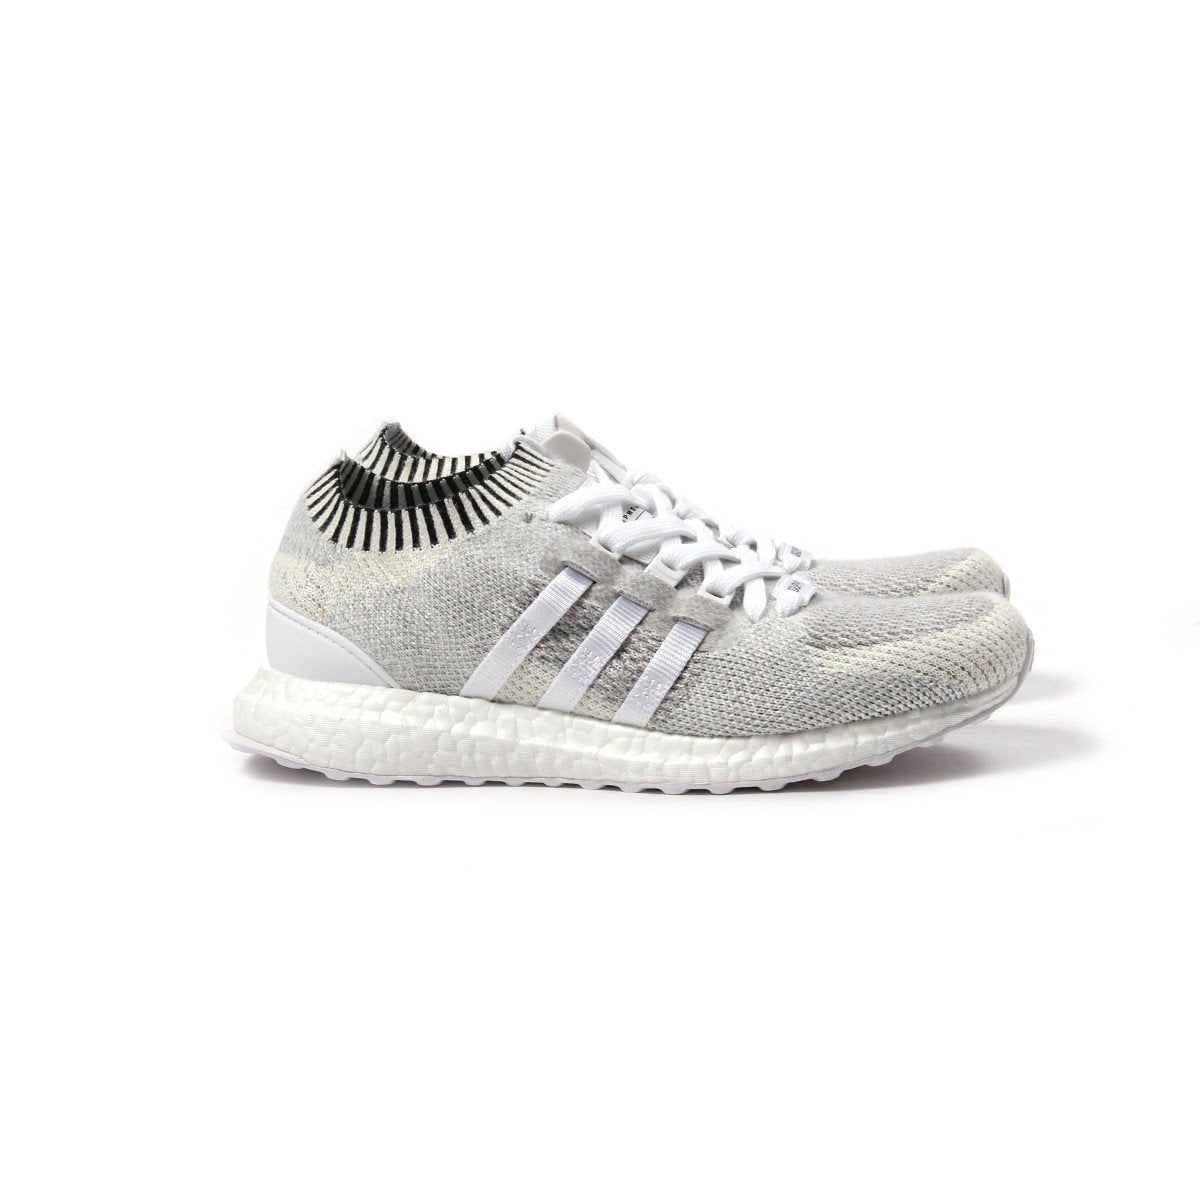 buy popular e9b16 4d9f7 ConceptsIntl | adidas EQT Support Ultra PK (VinWhite/White ...